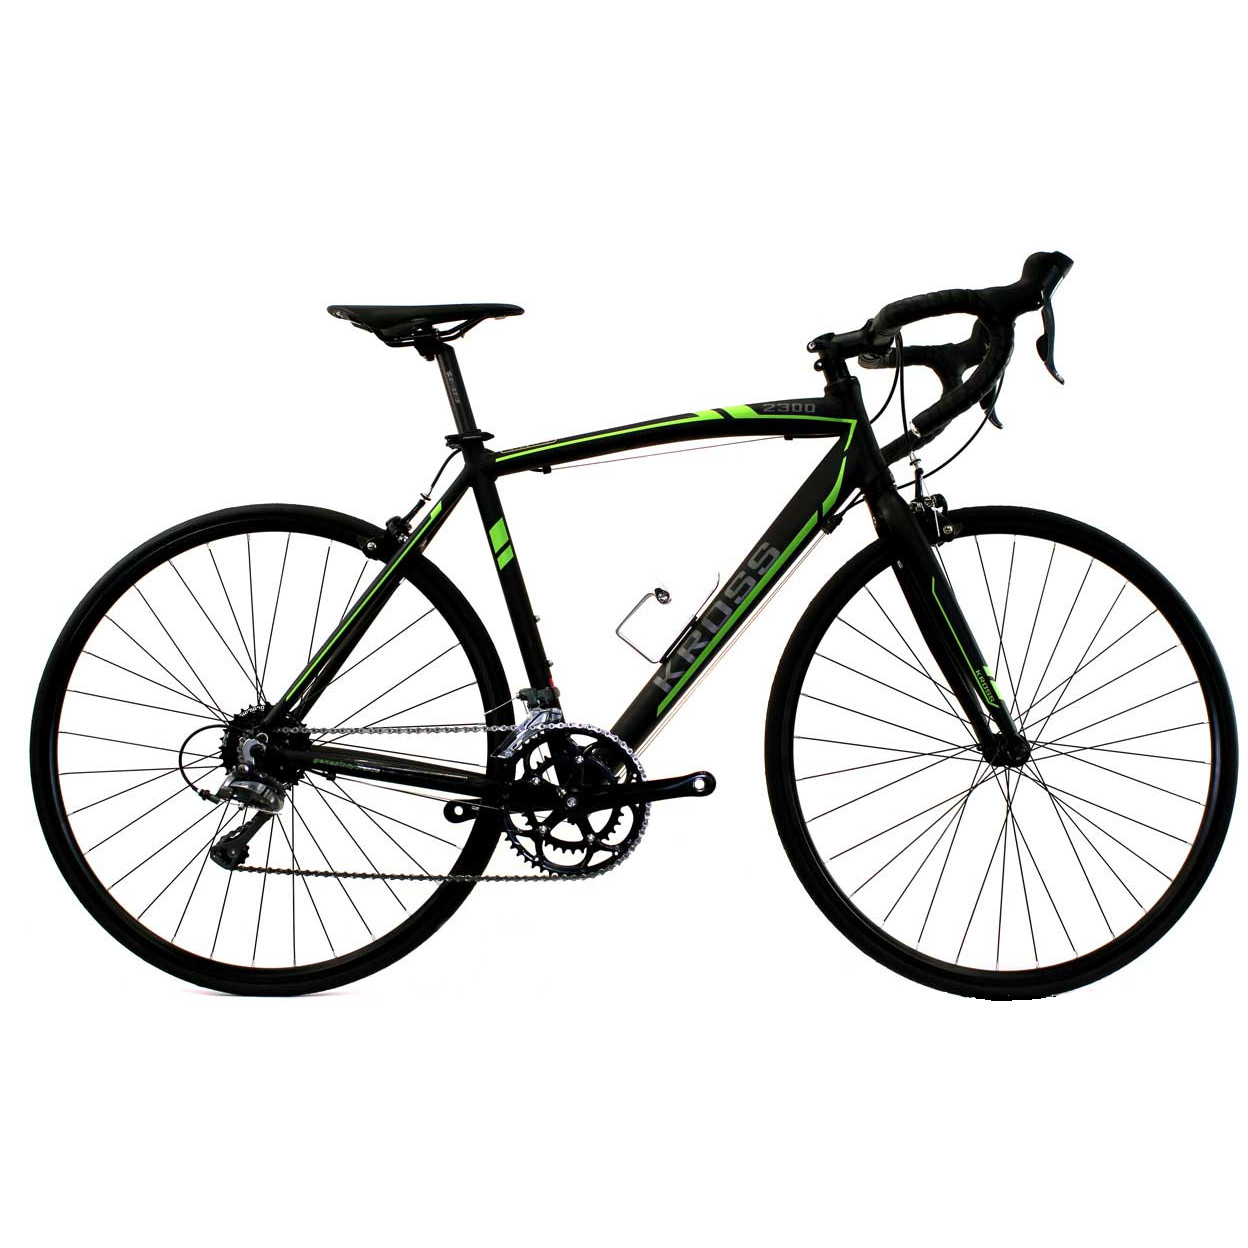 GENESIS KROSS 2300 16 SPEED ROAD BICYCLE